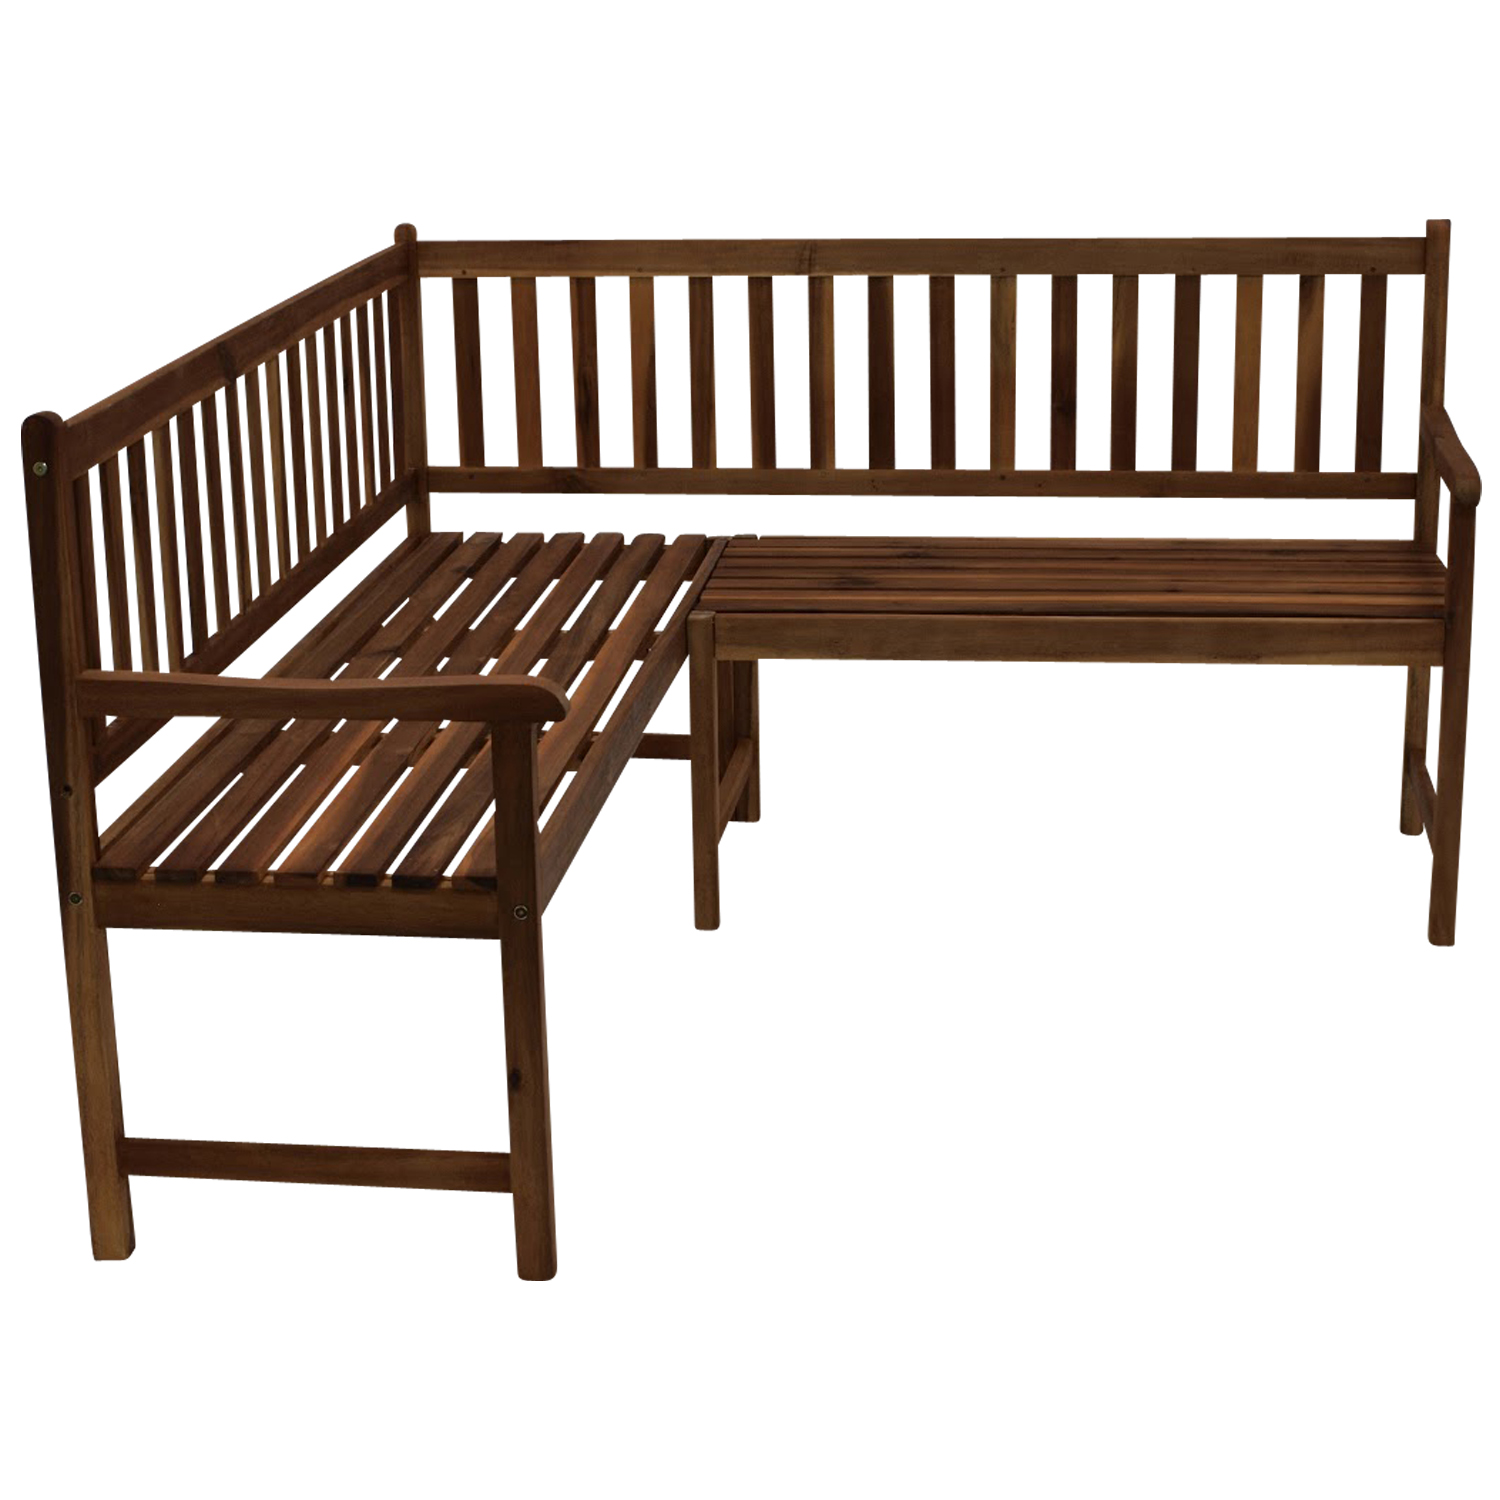 xl eckbank 150 x 150 cm gartenbank akazienholz fsc garten bank outdoor balkon ebay. Black Bedroom Furniture Sets. Home Design Ideas